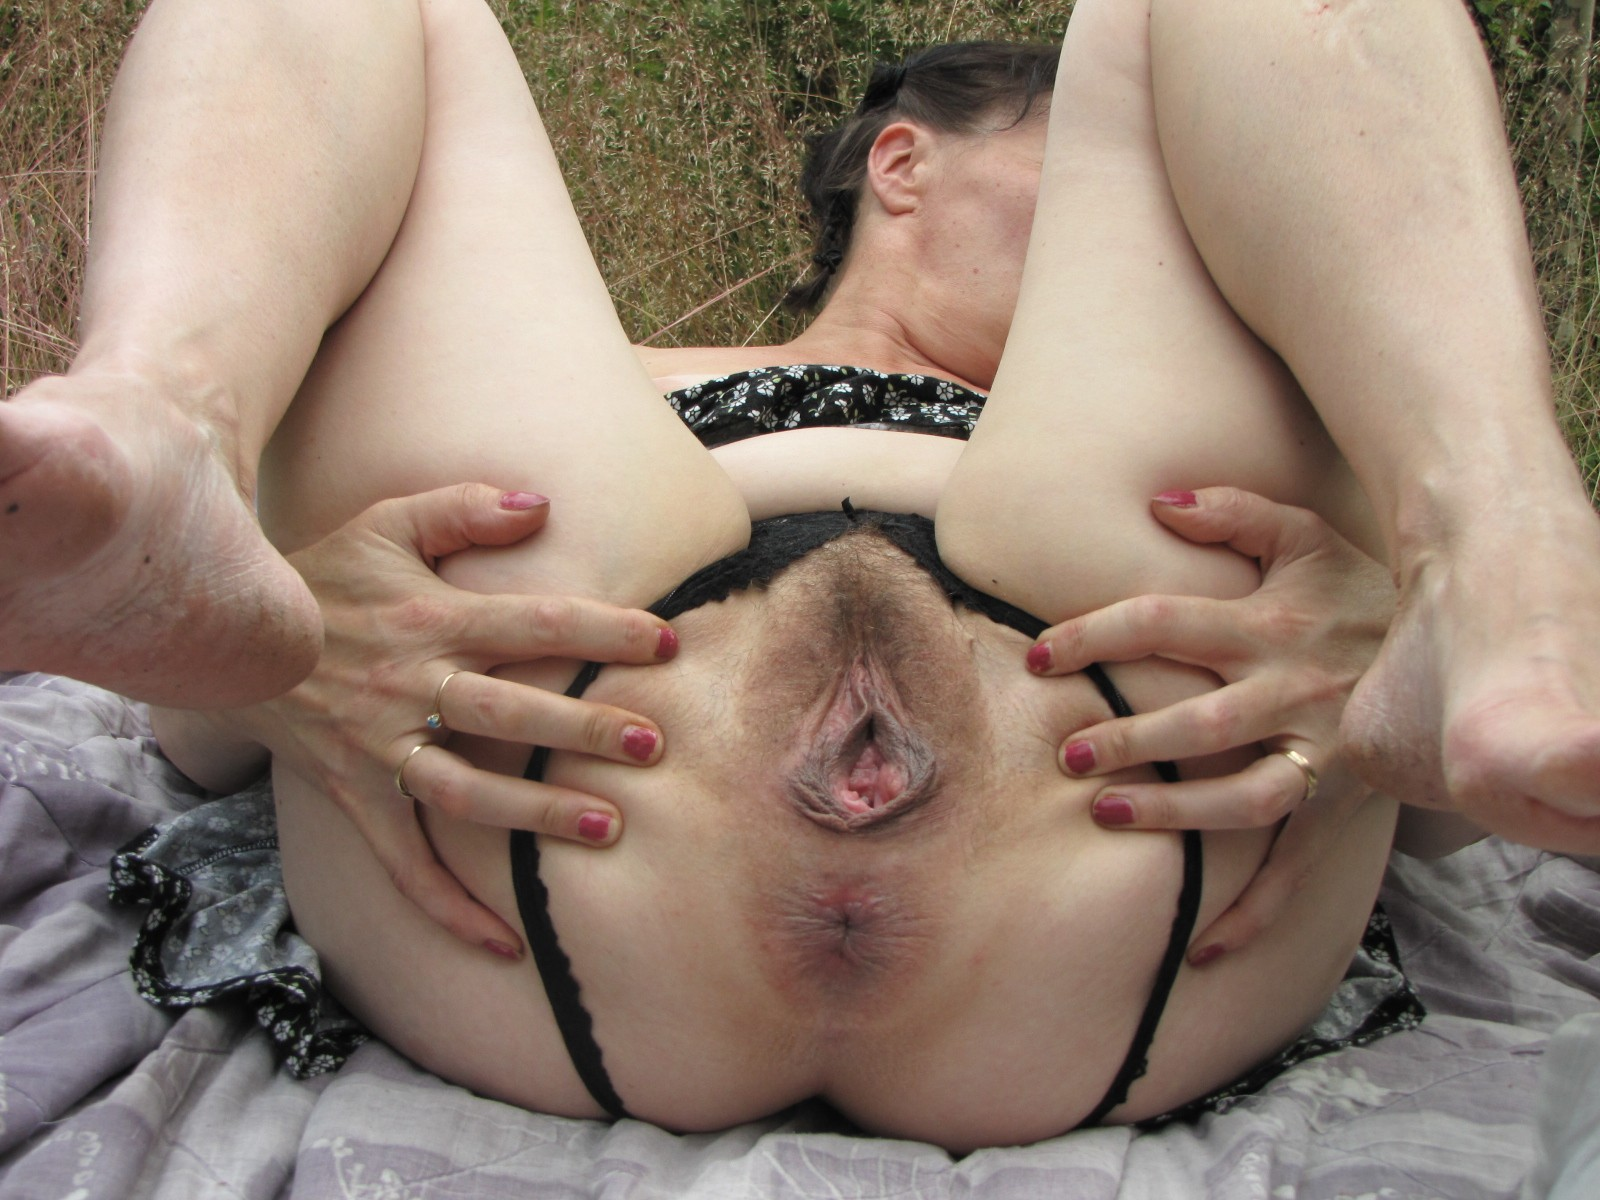 Texas wife swapping sites